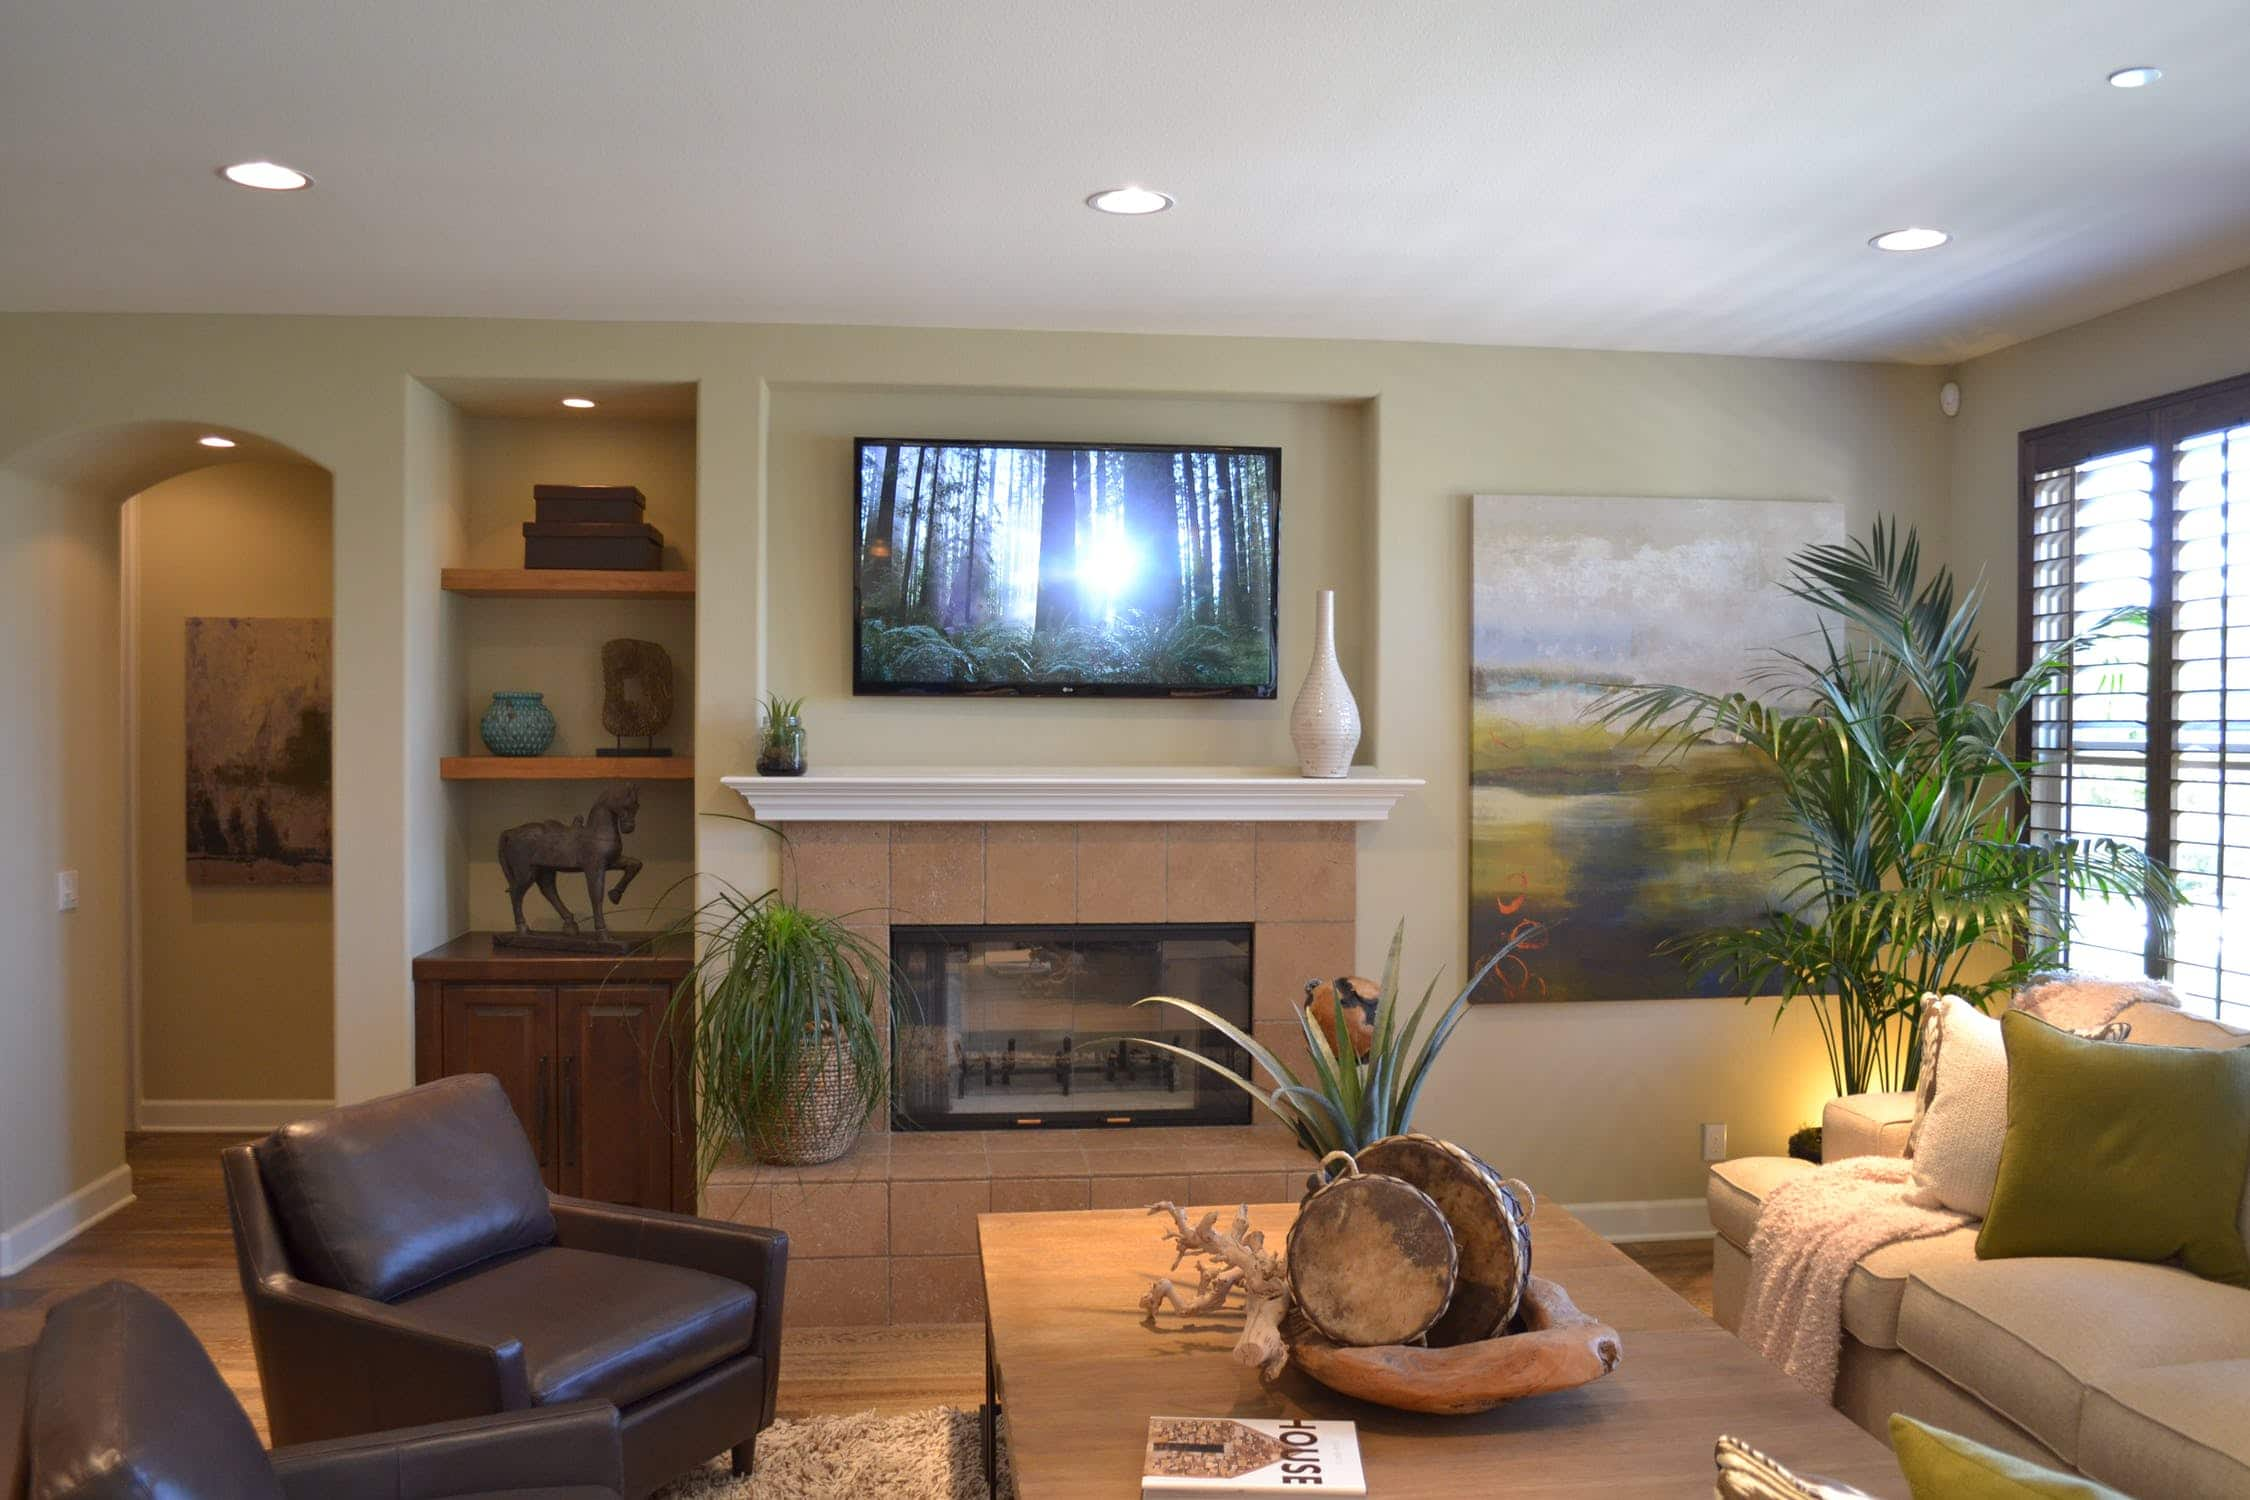 Home Automation Services: Who Are They For?